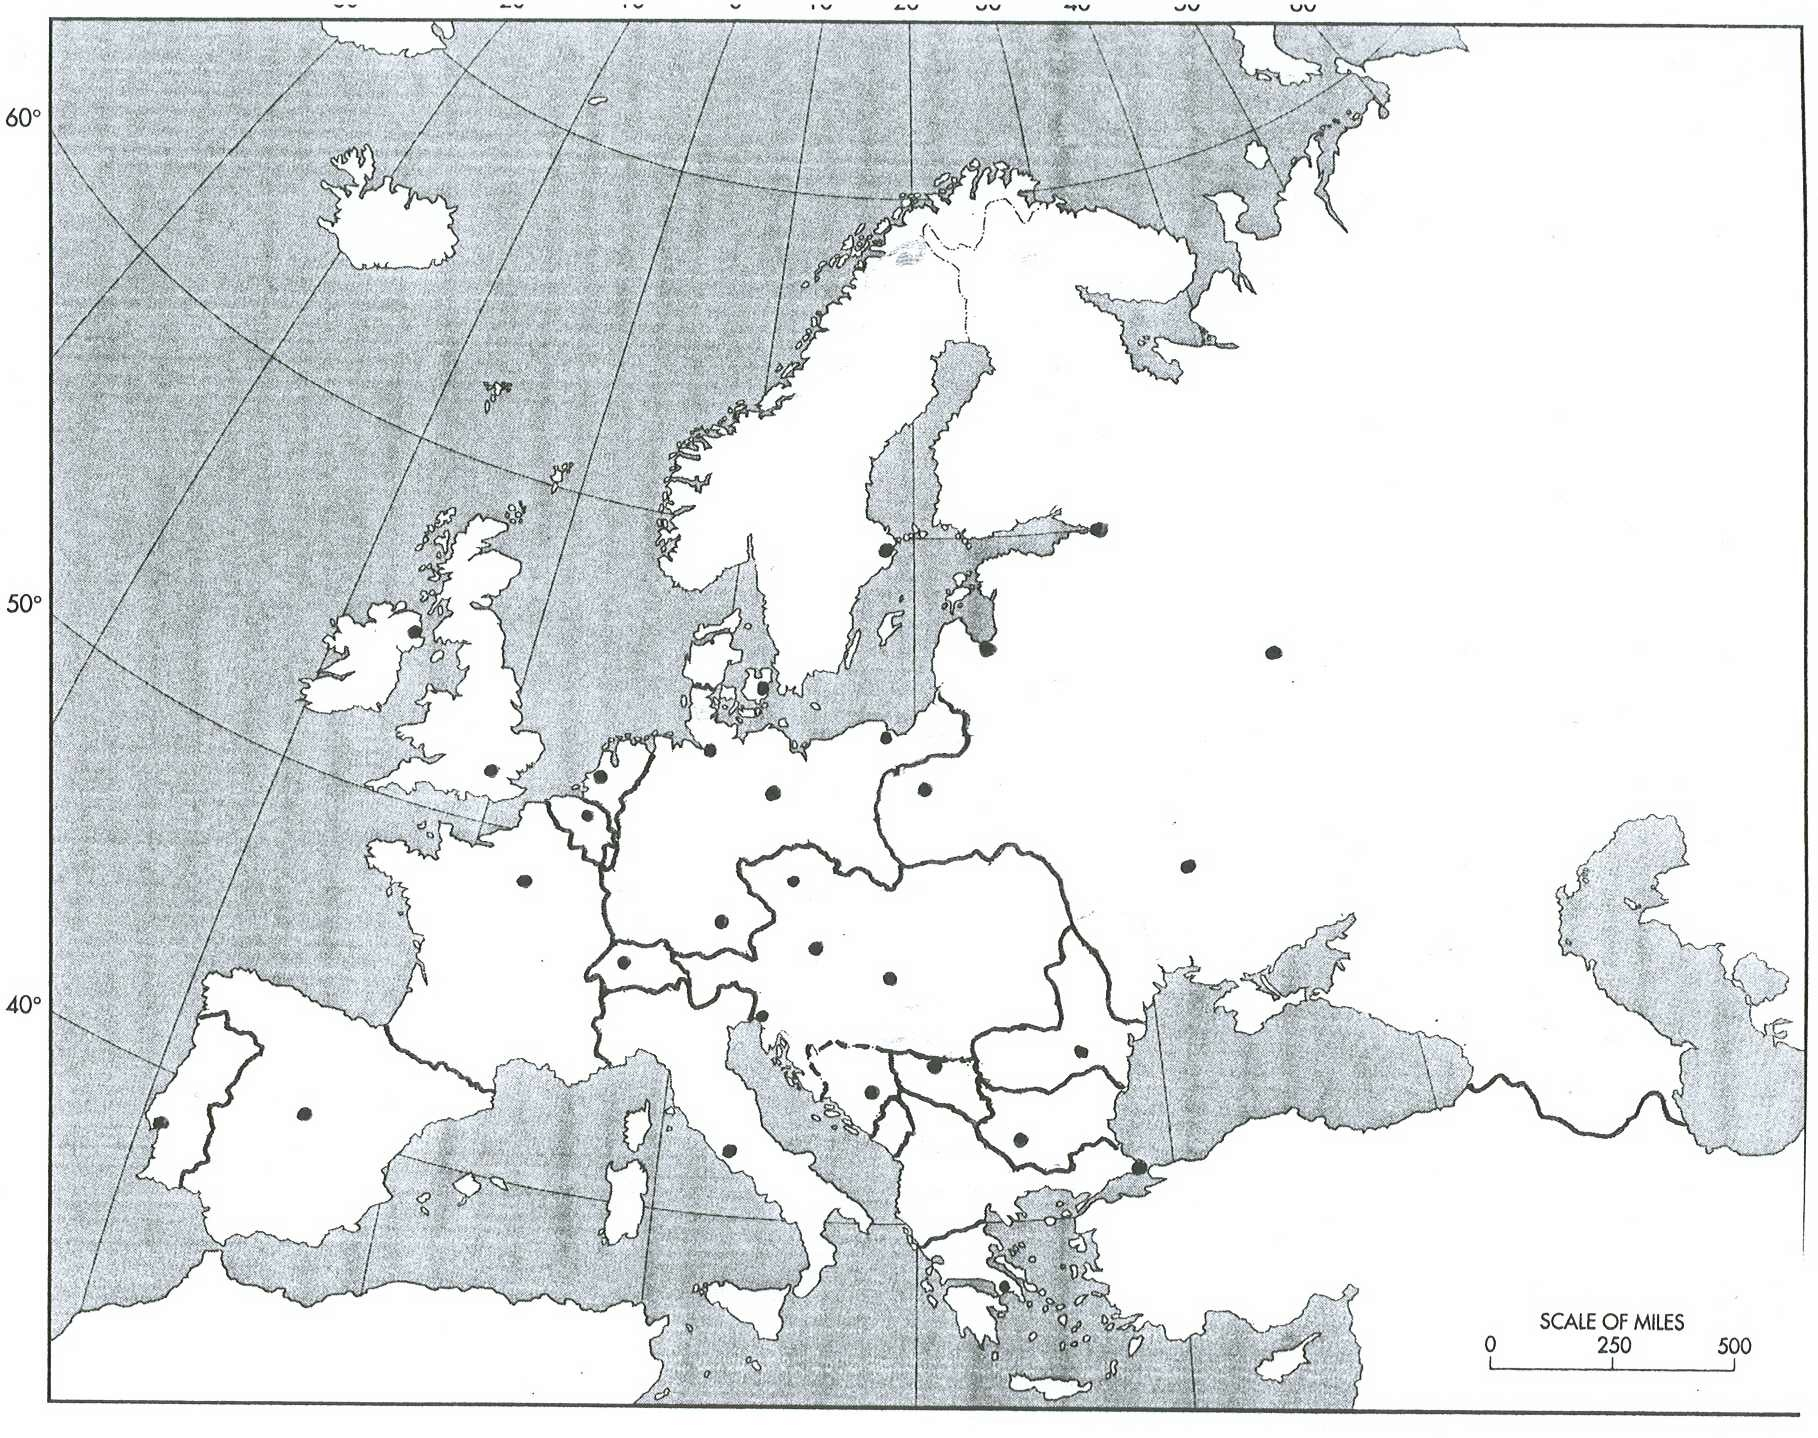 Blank Map Of Europe Wwi Thefreebiedepot - Europe world war1 map 1914